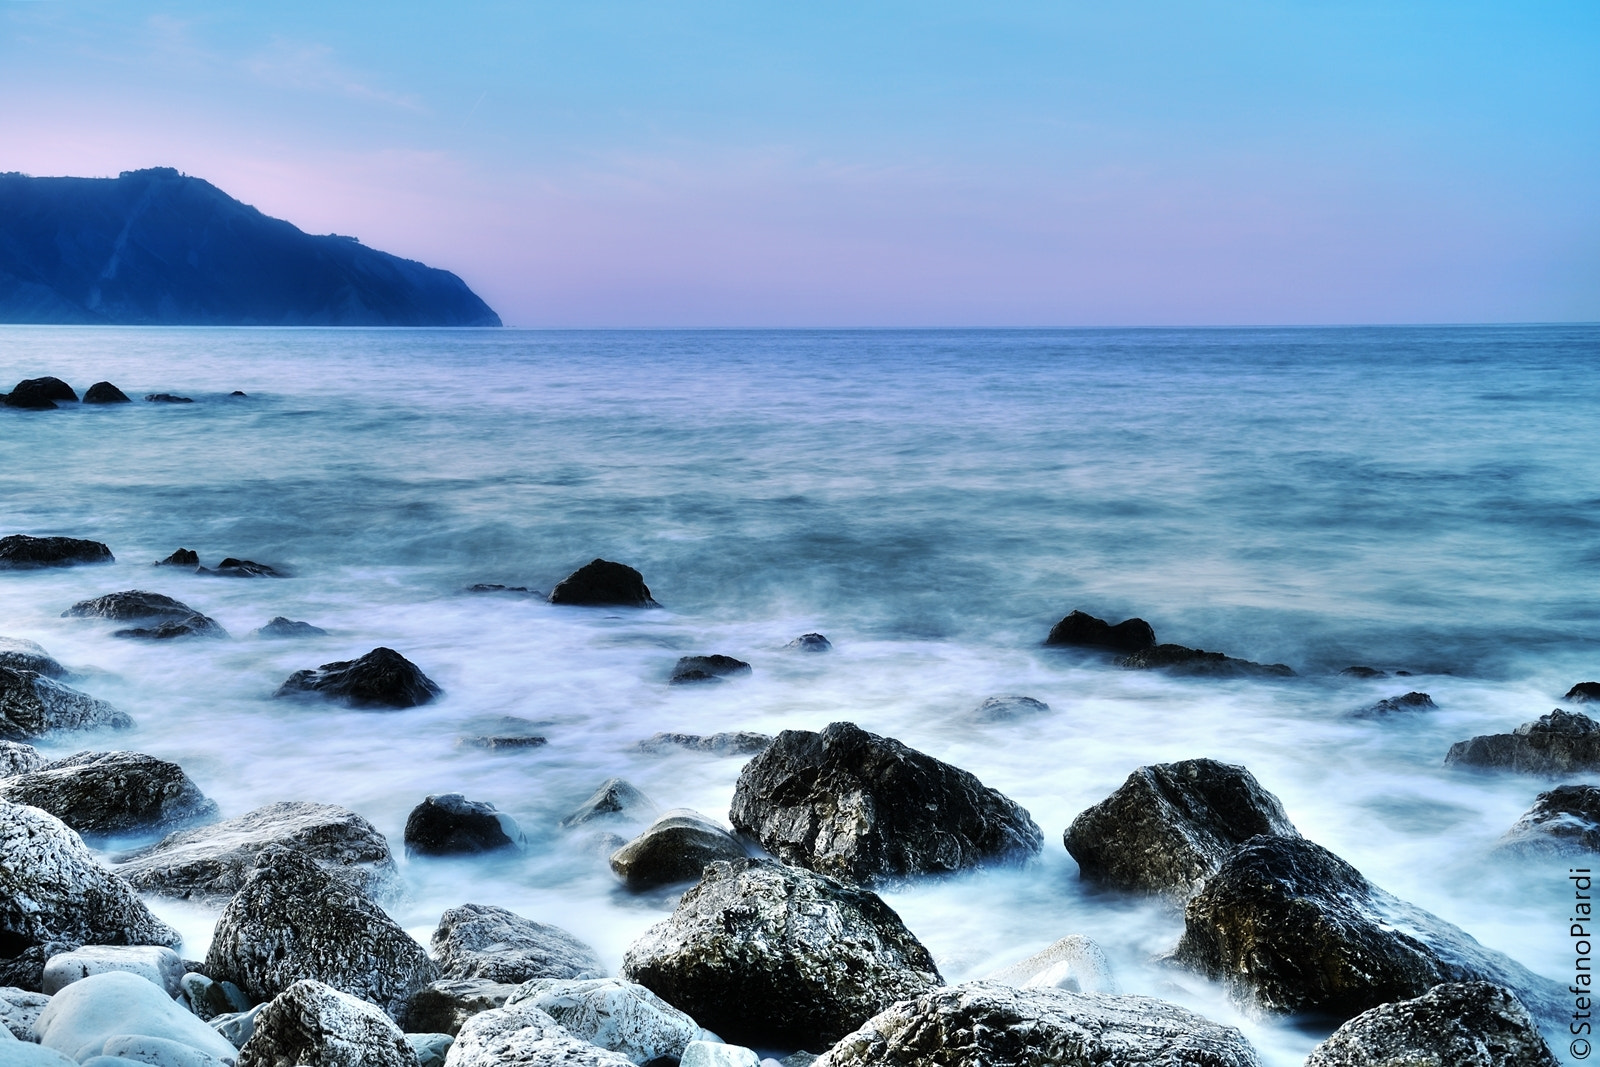 Photograph Waves, blue, pink. by Stefano Piardi on 500px